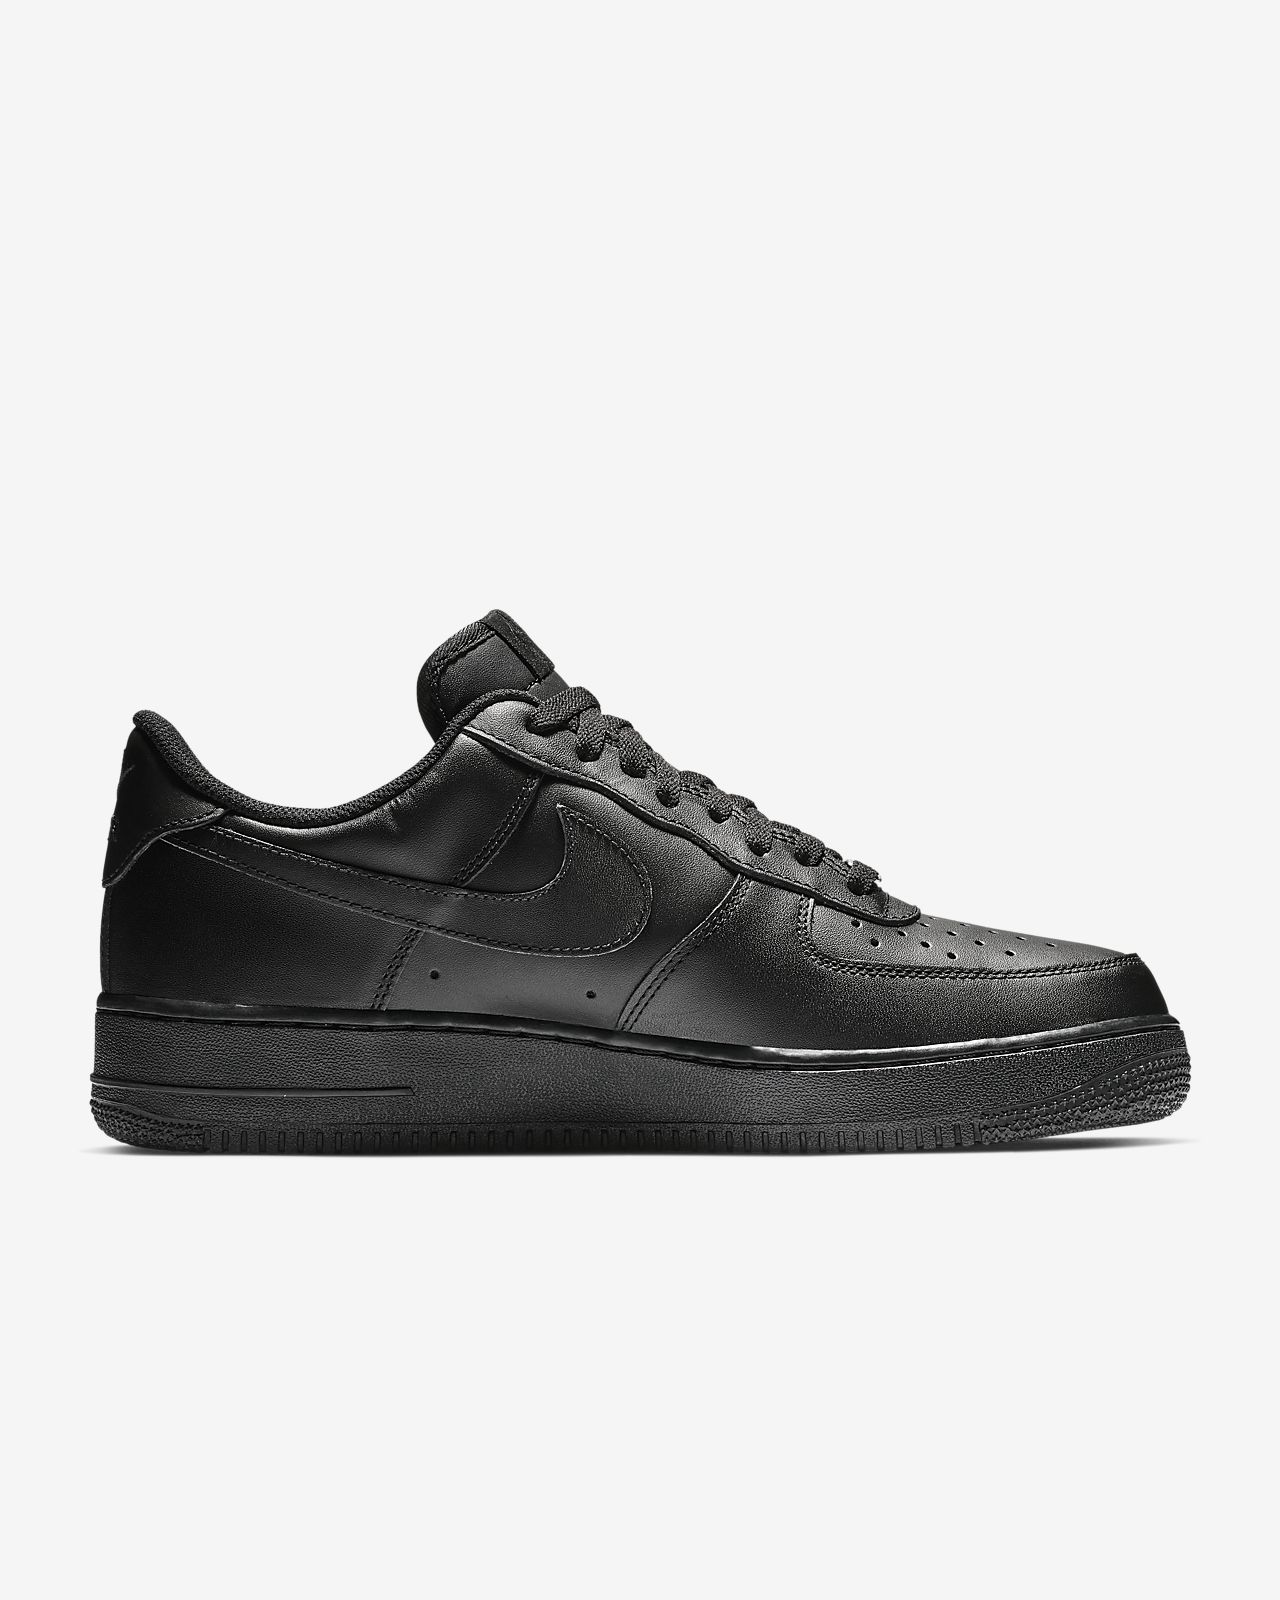 mike air force 1